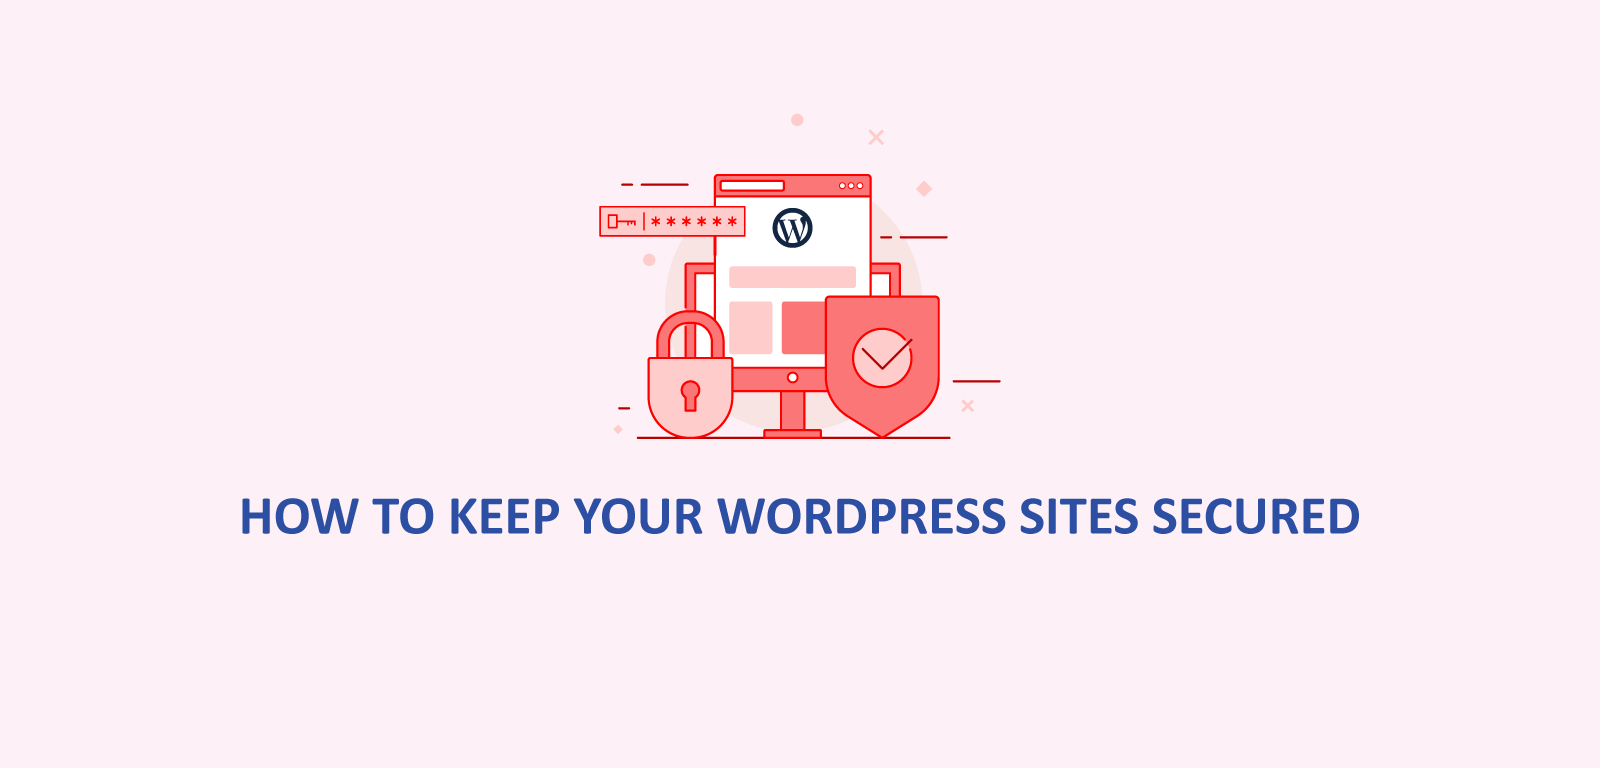 How to keep your WordPress sites secured